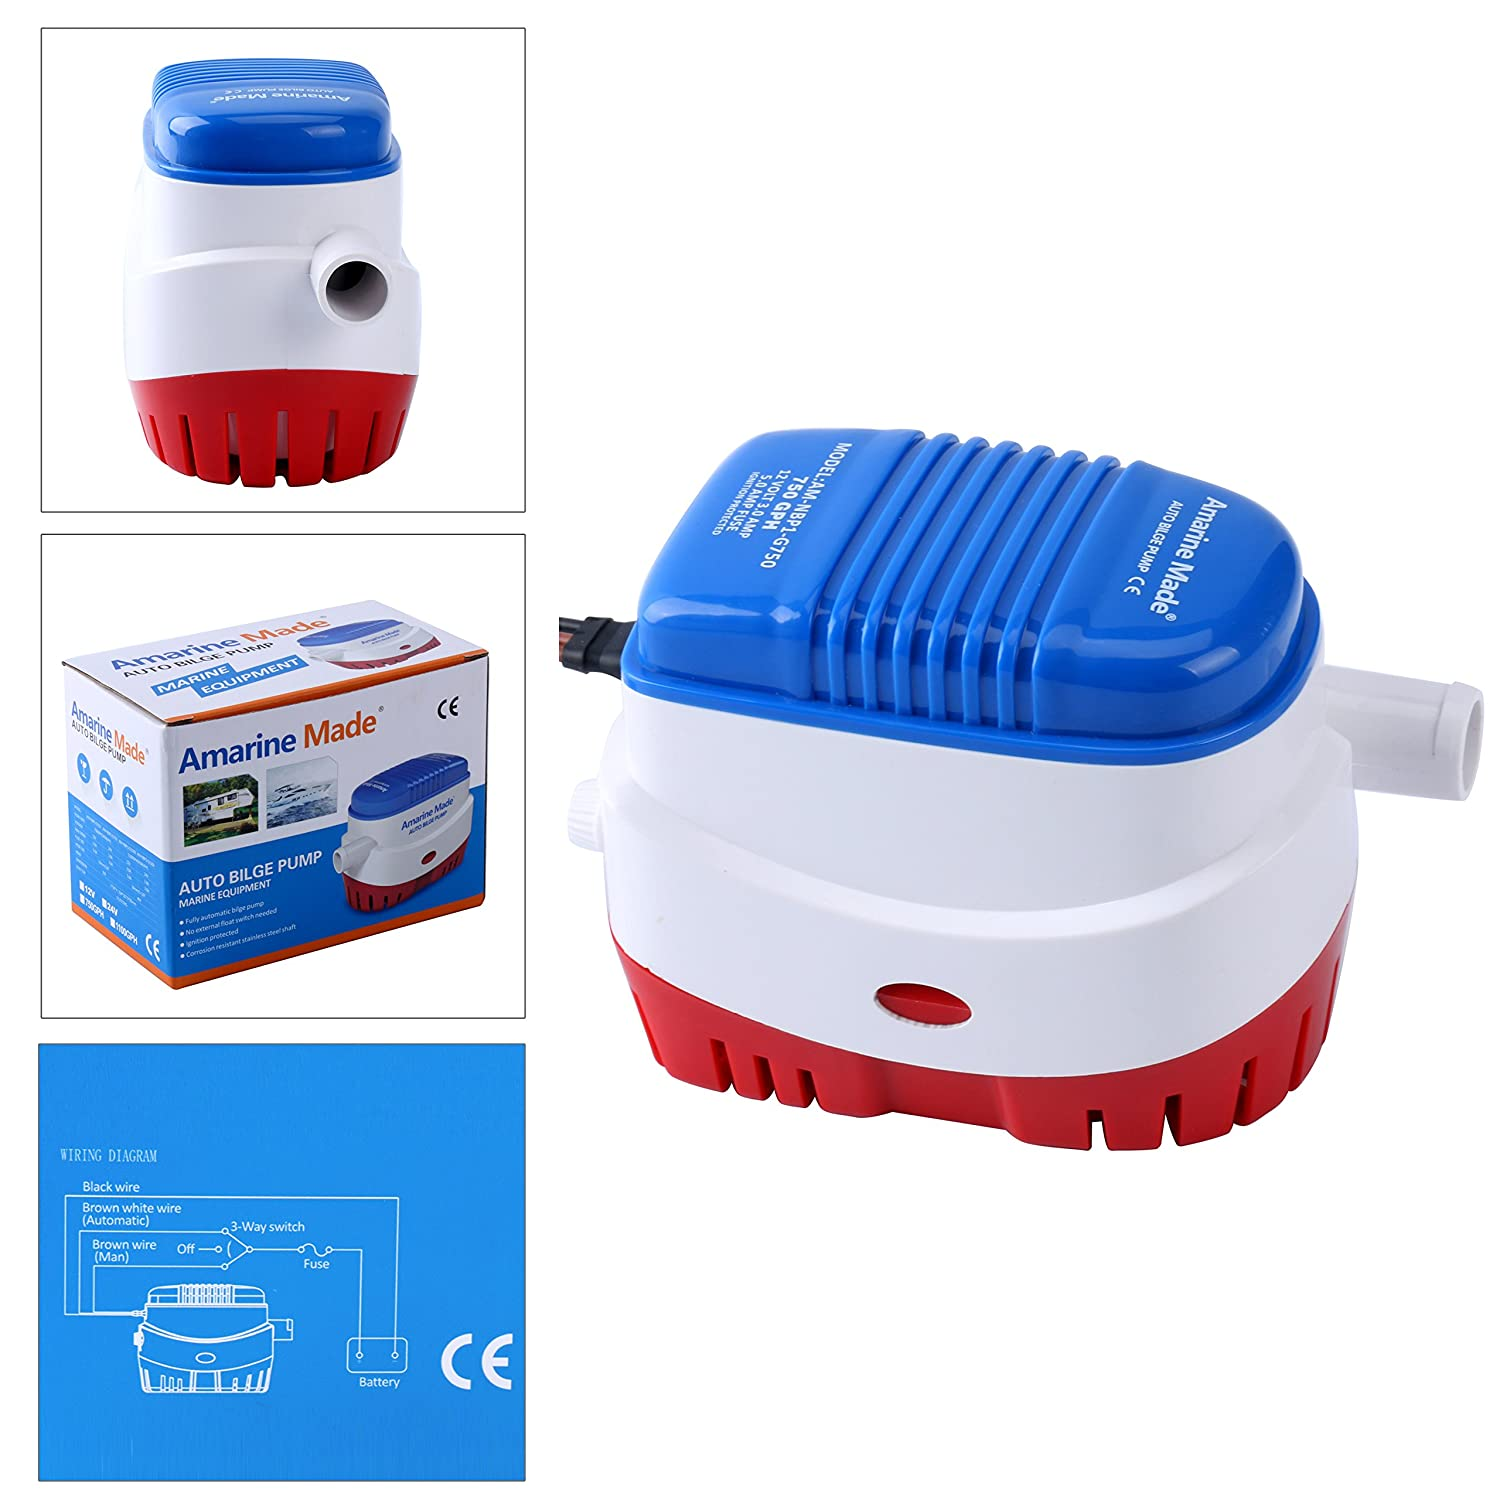 Amarine-made Automatic Submersible Boat Bilge Water Pump 12v 750gph Auto with Float Switch-new Blue